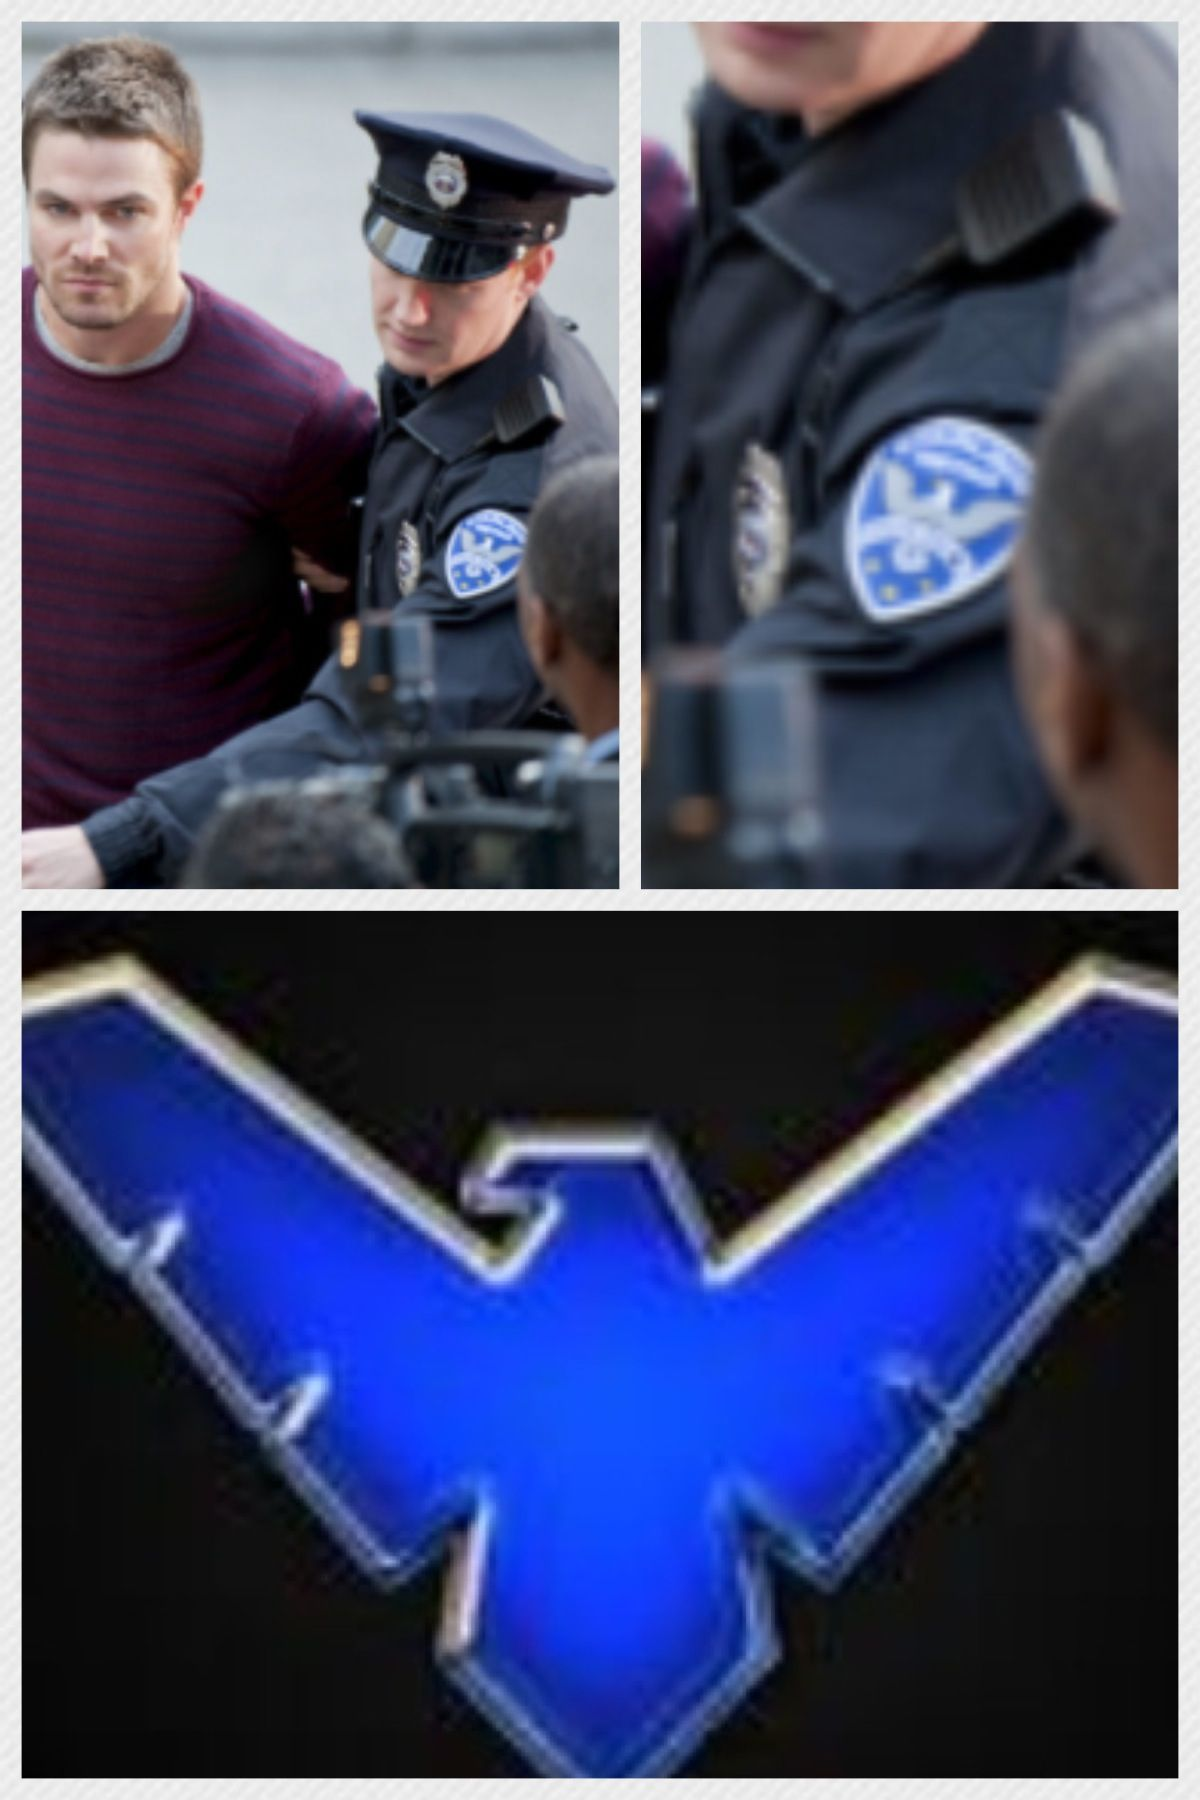 IS IT TRUE!?!? A nightwing logo on a policemans uniform in Arrow